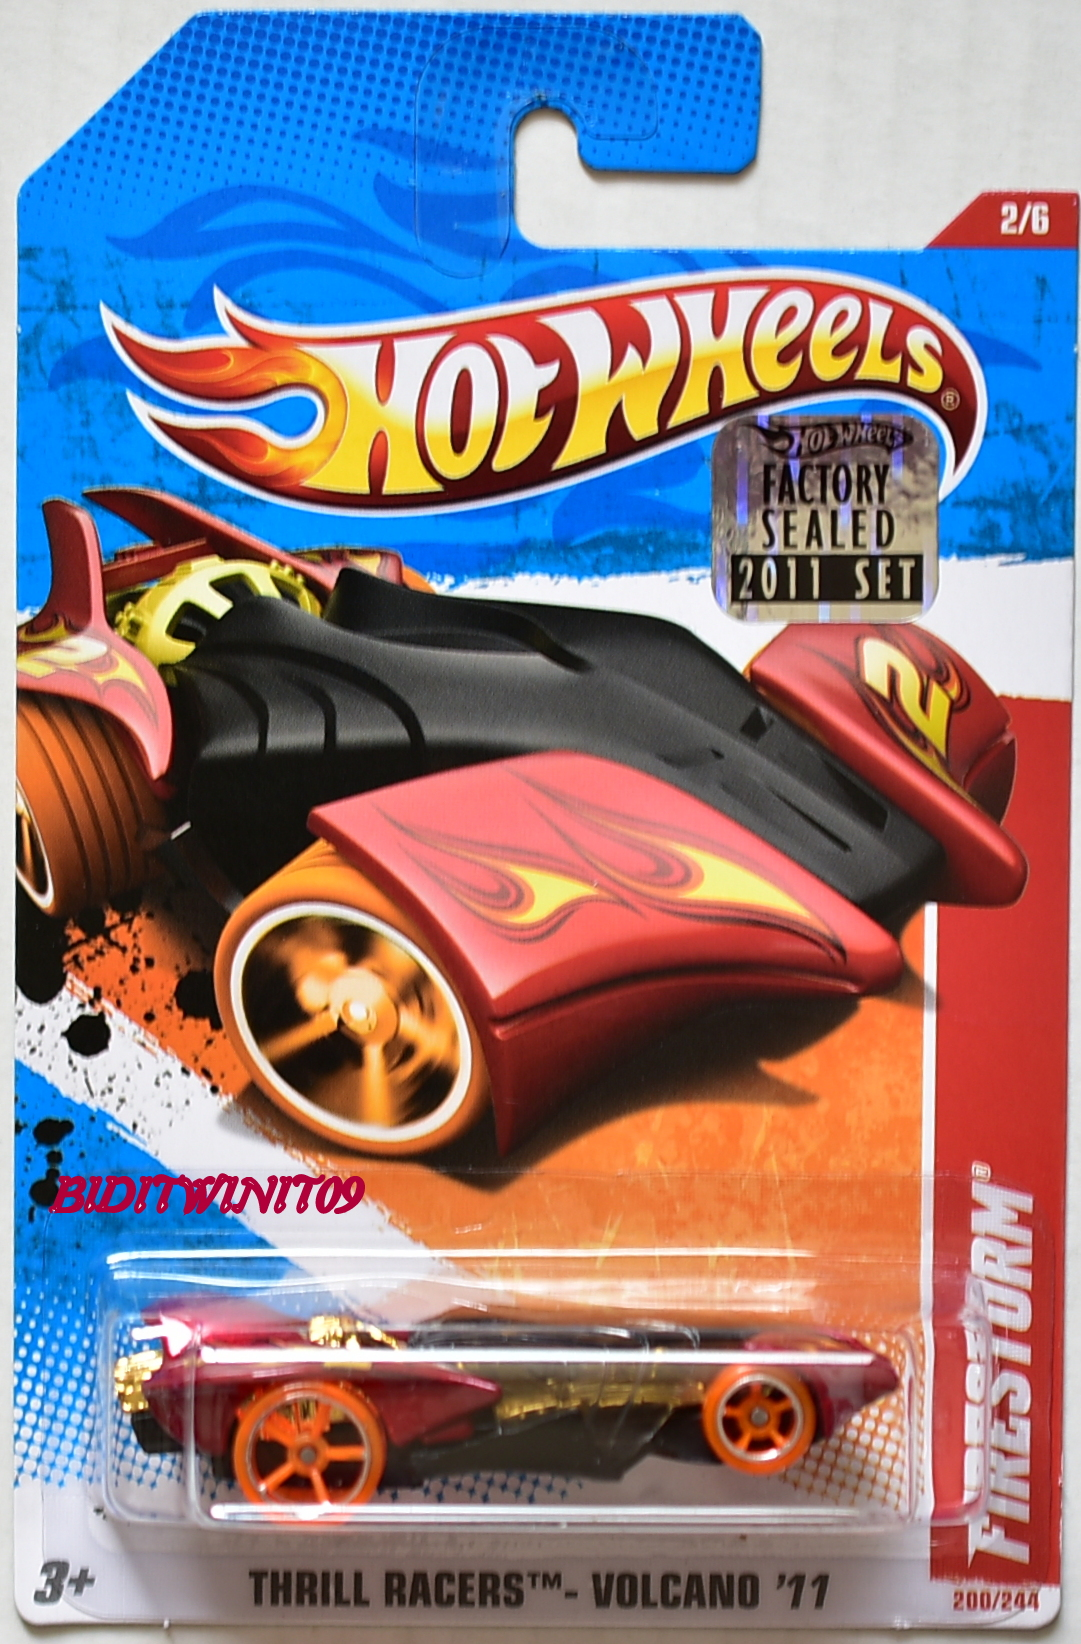 HOT WHEELS 2011 THRILL RACERS - VOLCANO FIRESTORM #2/6 FACTORY SEALED